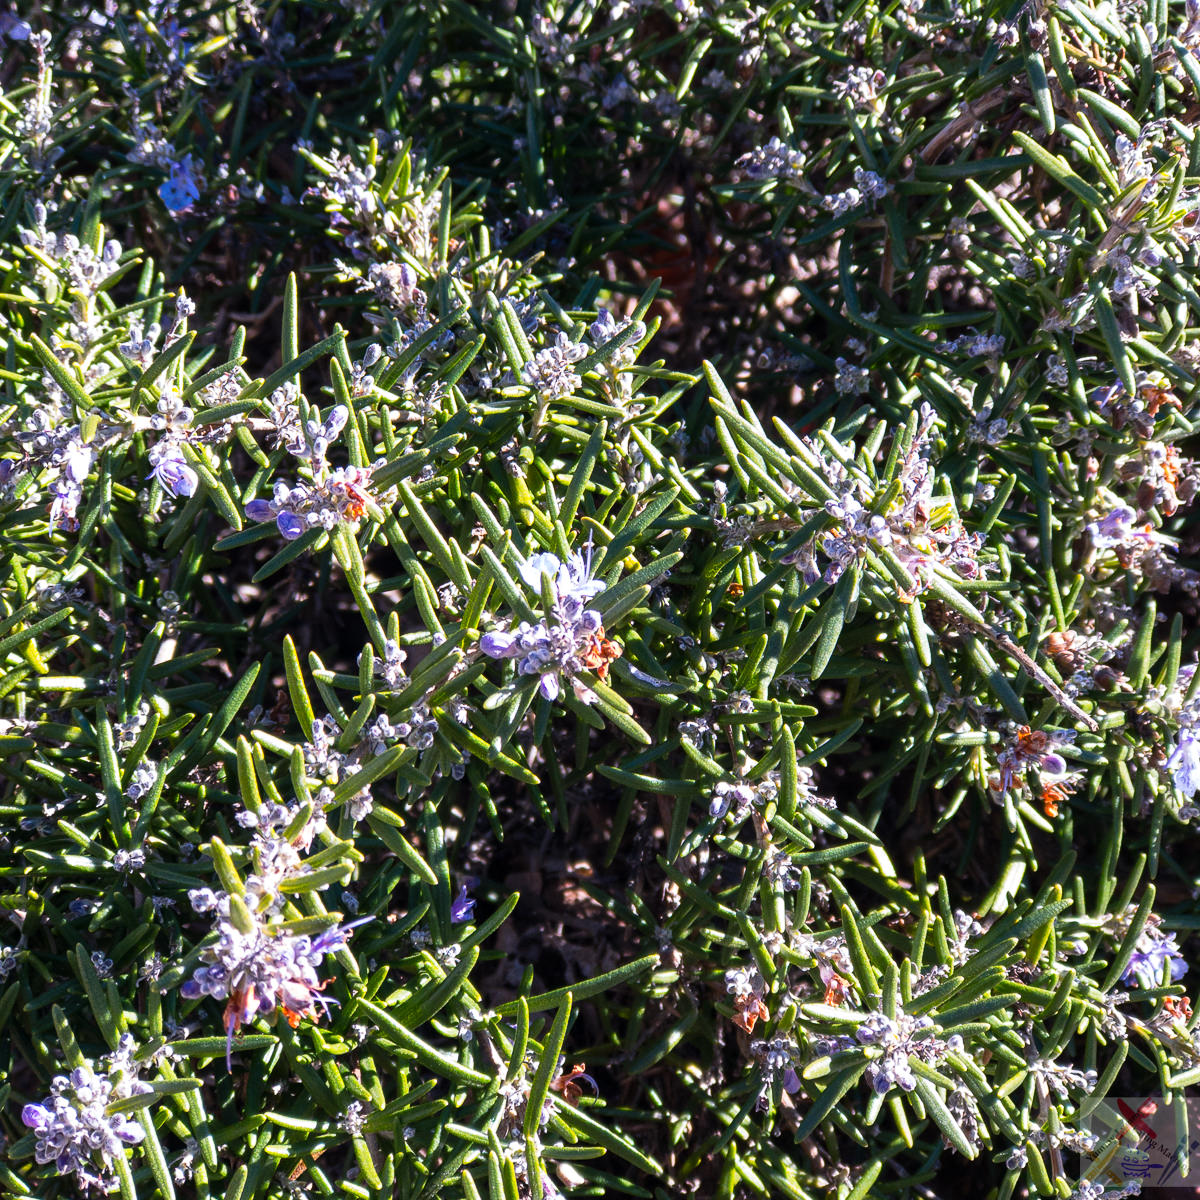 Rosemary bush, thick and flowering Gary Lum